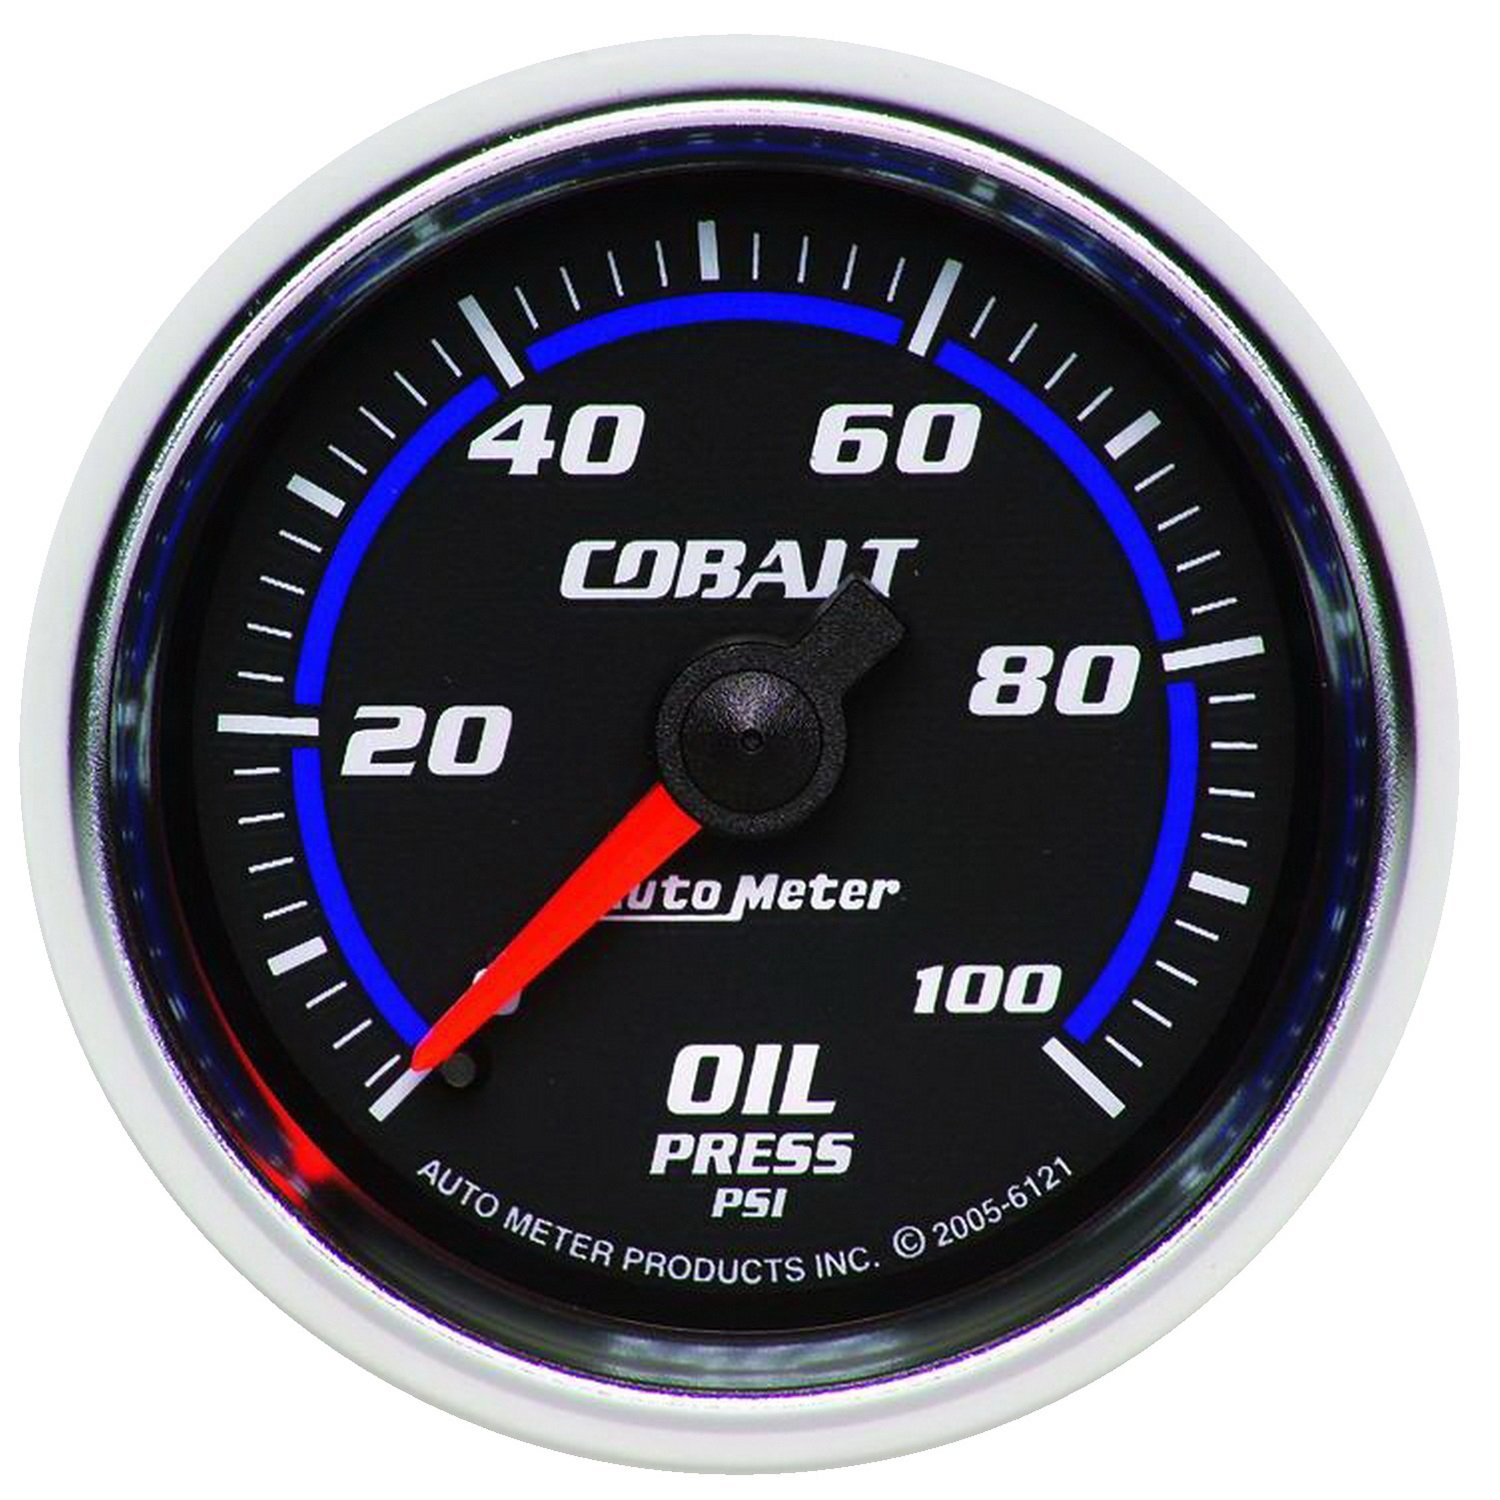 Auto Meter 6121 Cobalt Mechanical Oil Pressure Gauge by Auto Meter